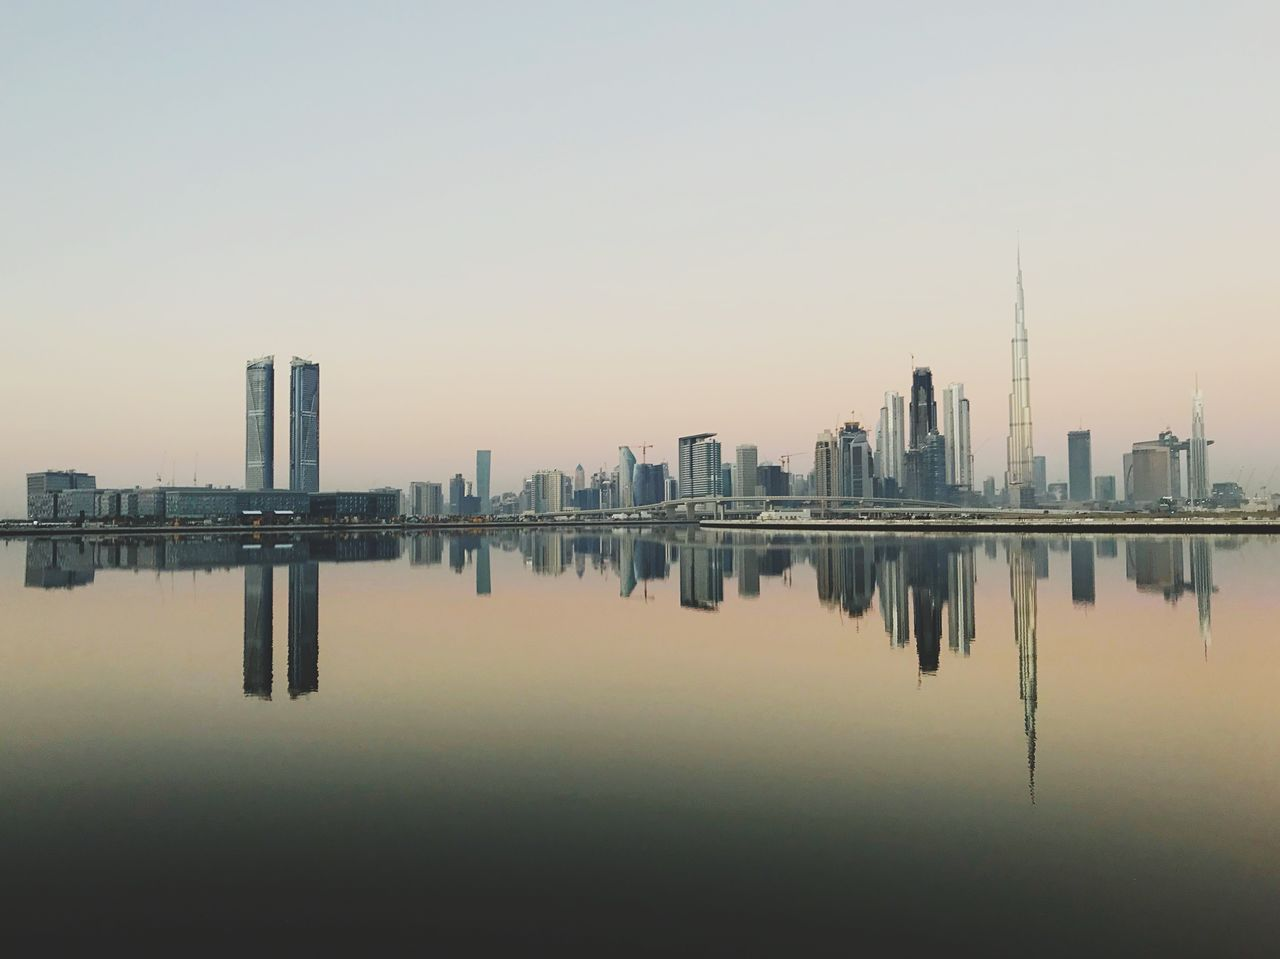 building exterior, sky, architecture, built structure, water, building, waterfront, reflection, city, office building exterior, skyscraper, urban skyline, landscape, tall - high, clear sky, nature, tower, no people, cityscape, outdoors, financial district, modern, spire